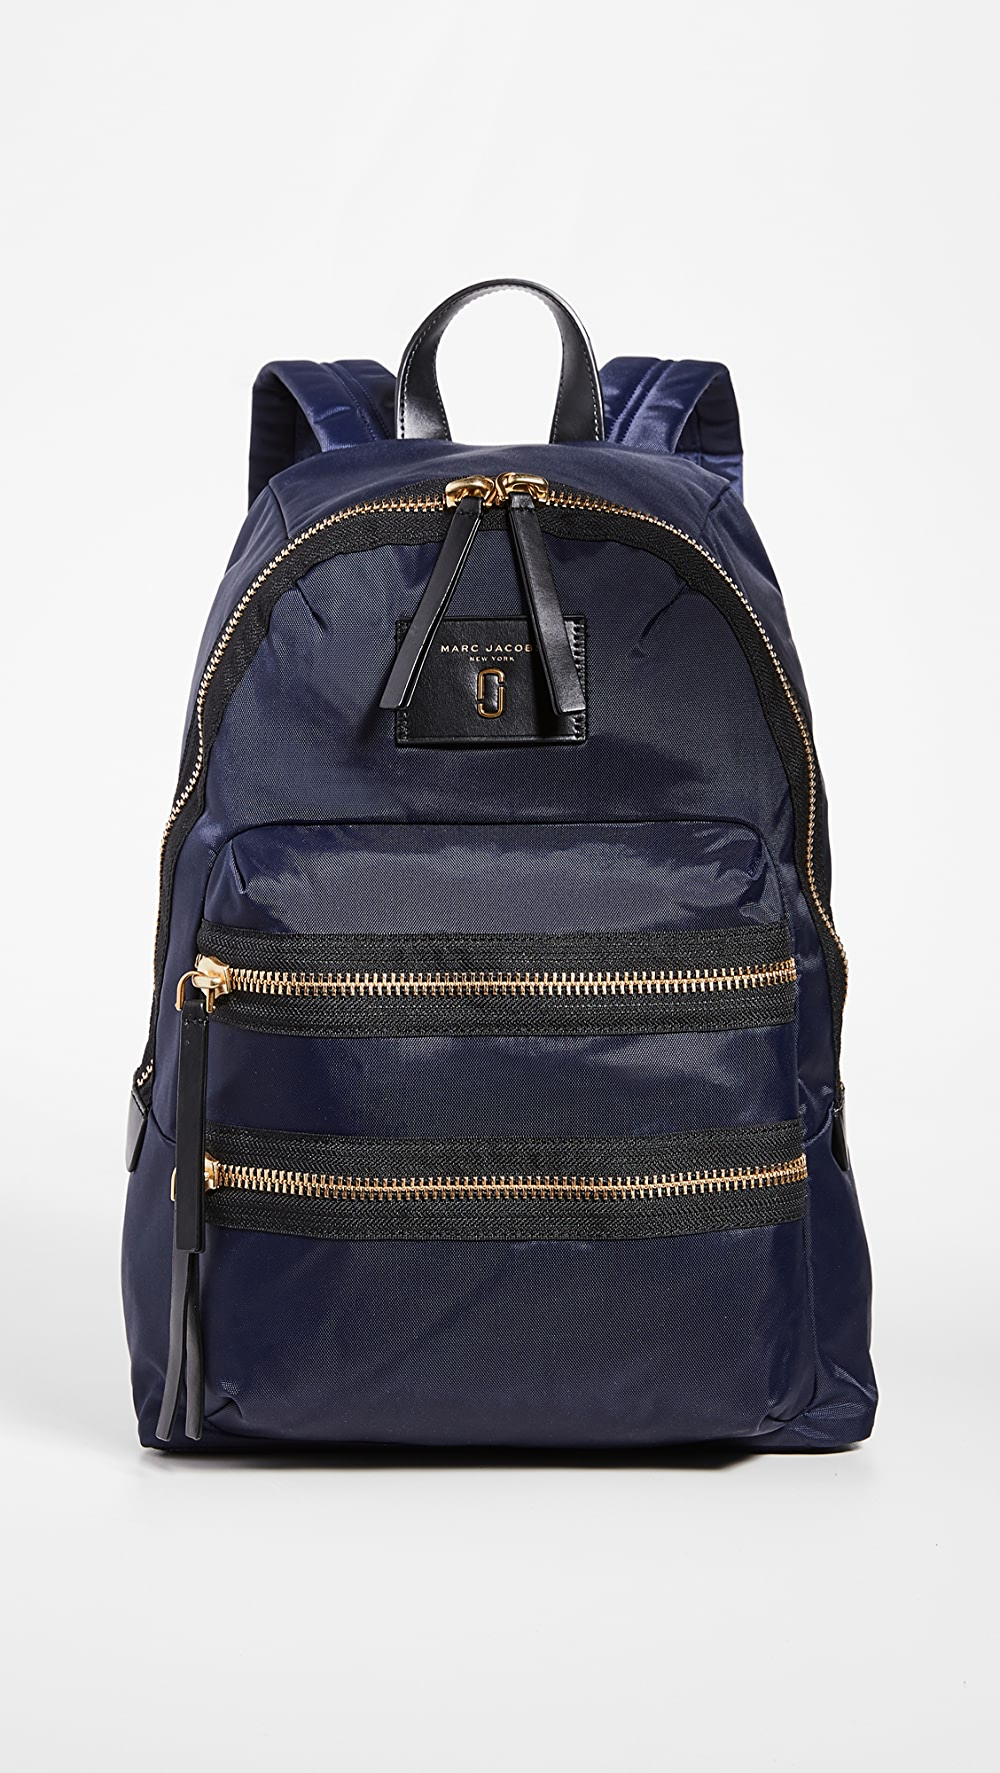 Conscientious The Marc Jacobs - Nylon Biker Backpack Be Friendly In Use